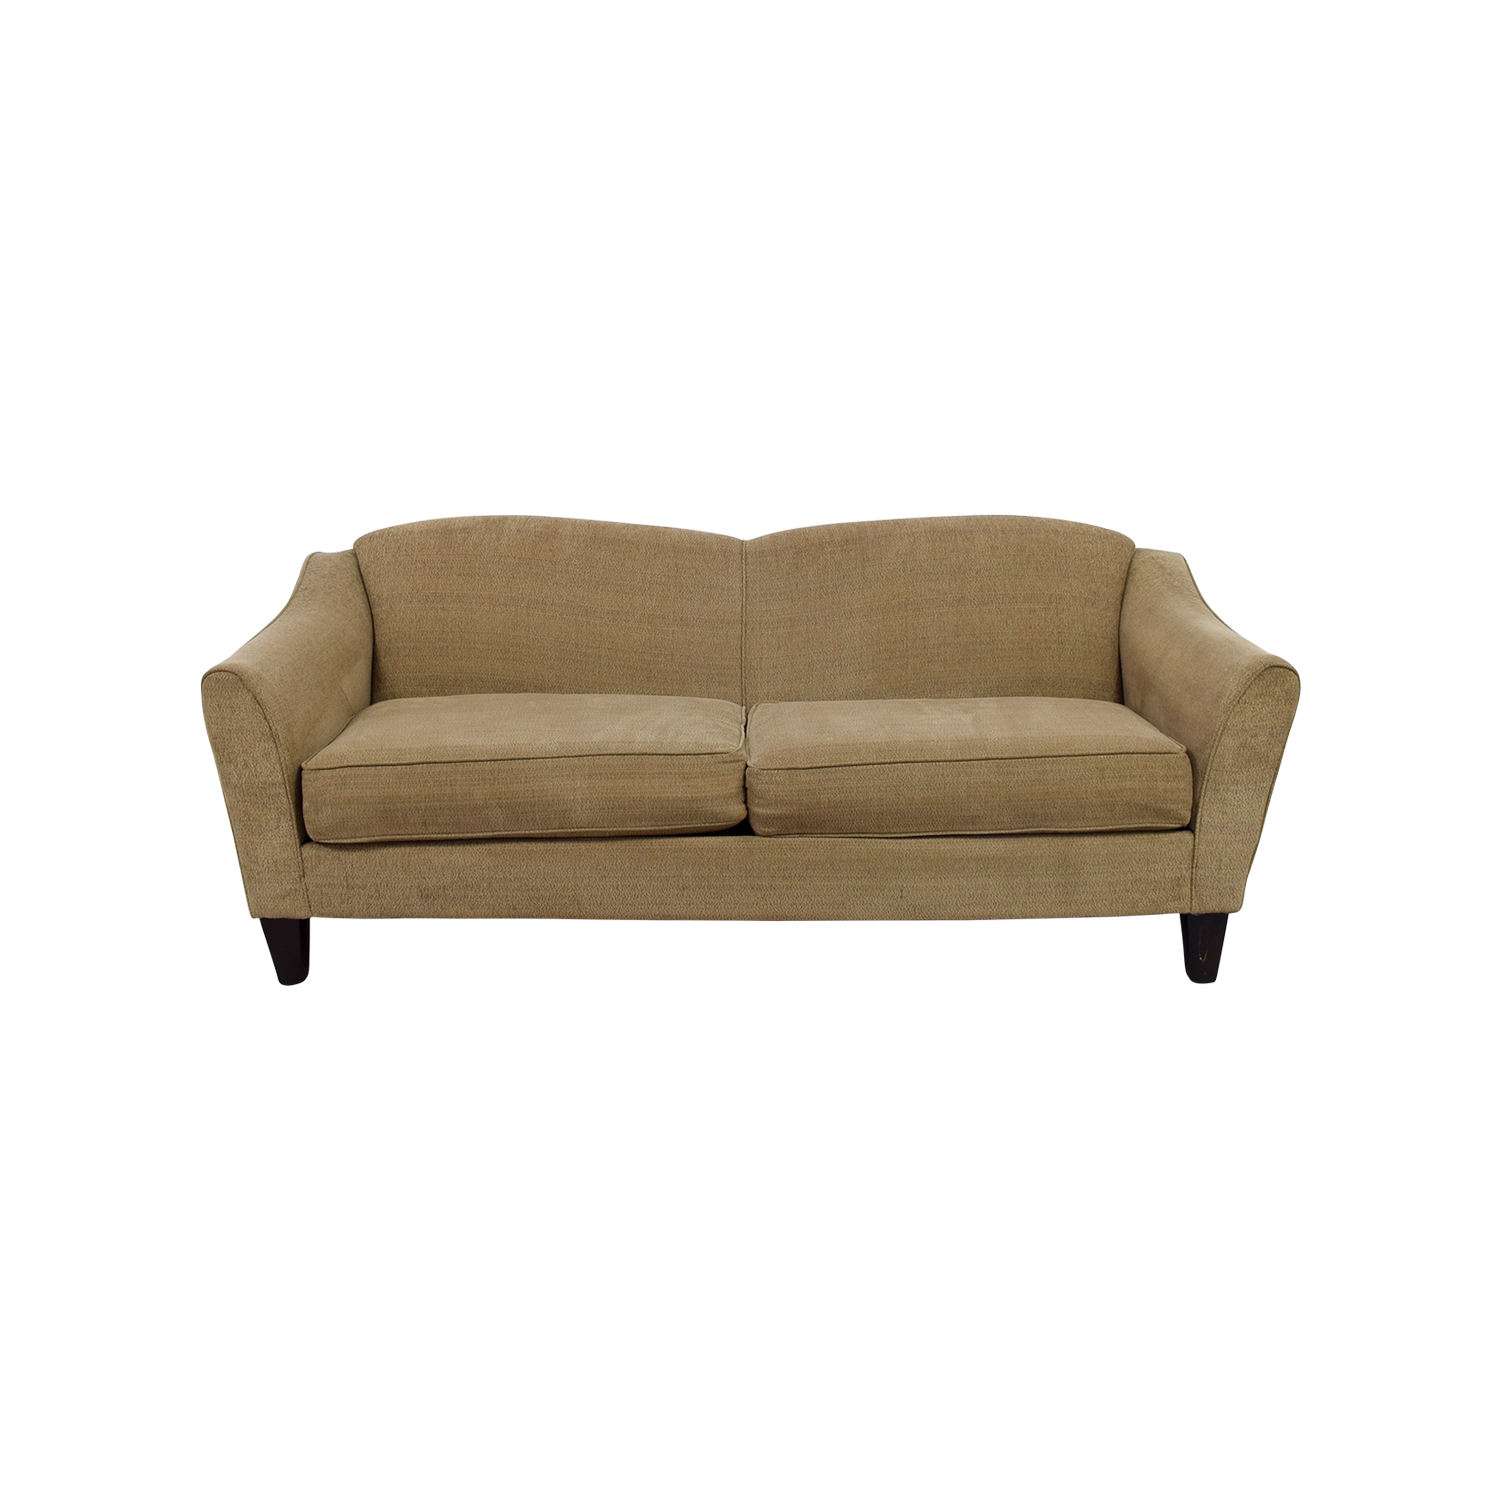 shop Bobs Furniture Tessa Beige Sofa Bobs Furniture Classic Sofas